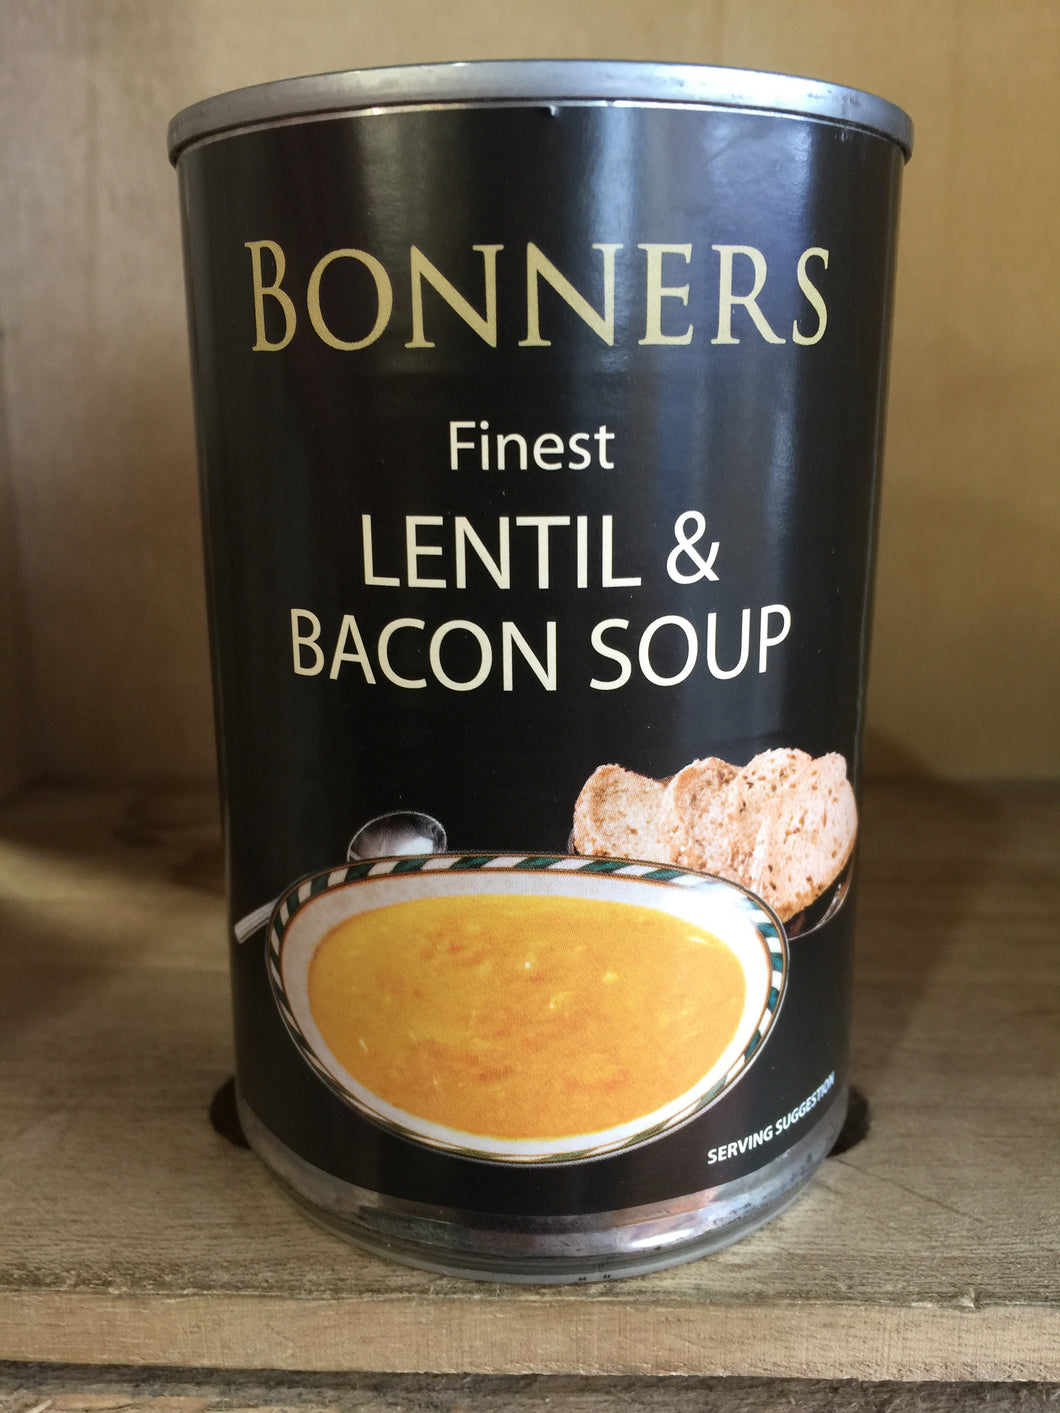 Bonners Finest Lentil & Bacon Soup 400g